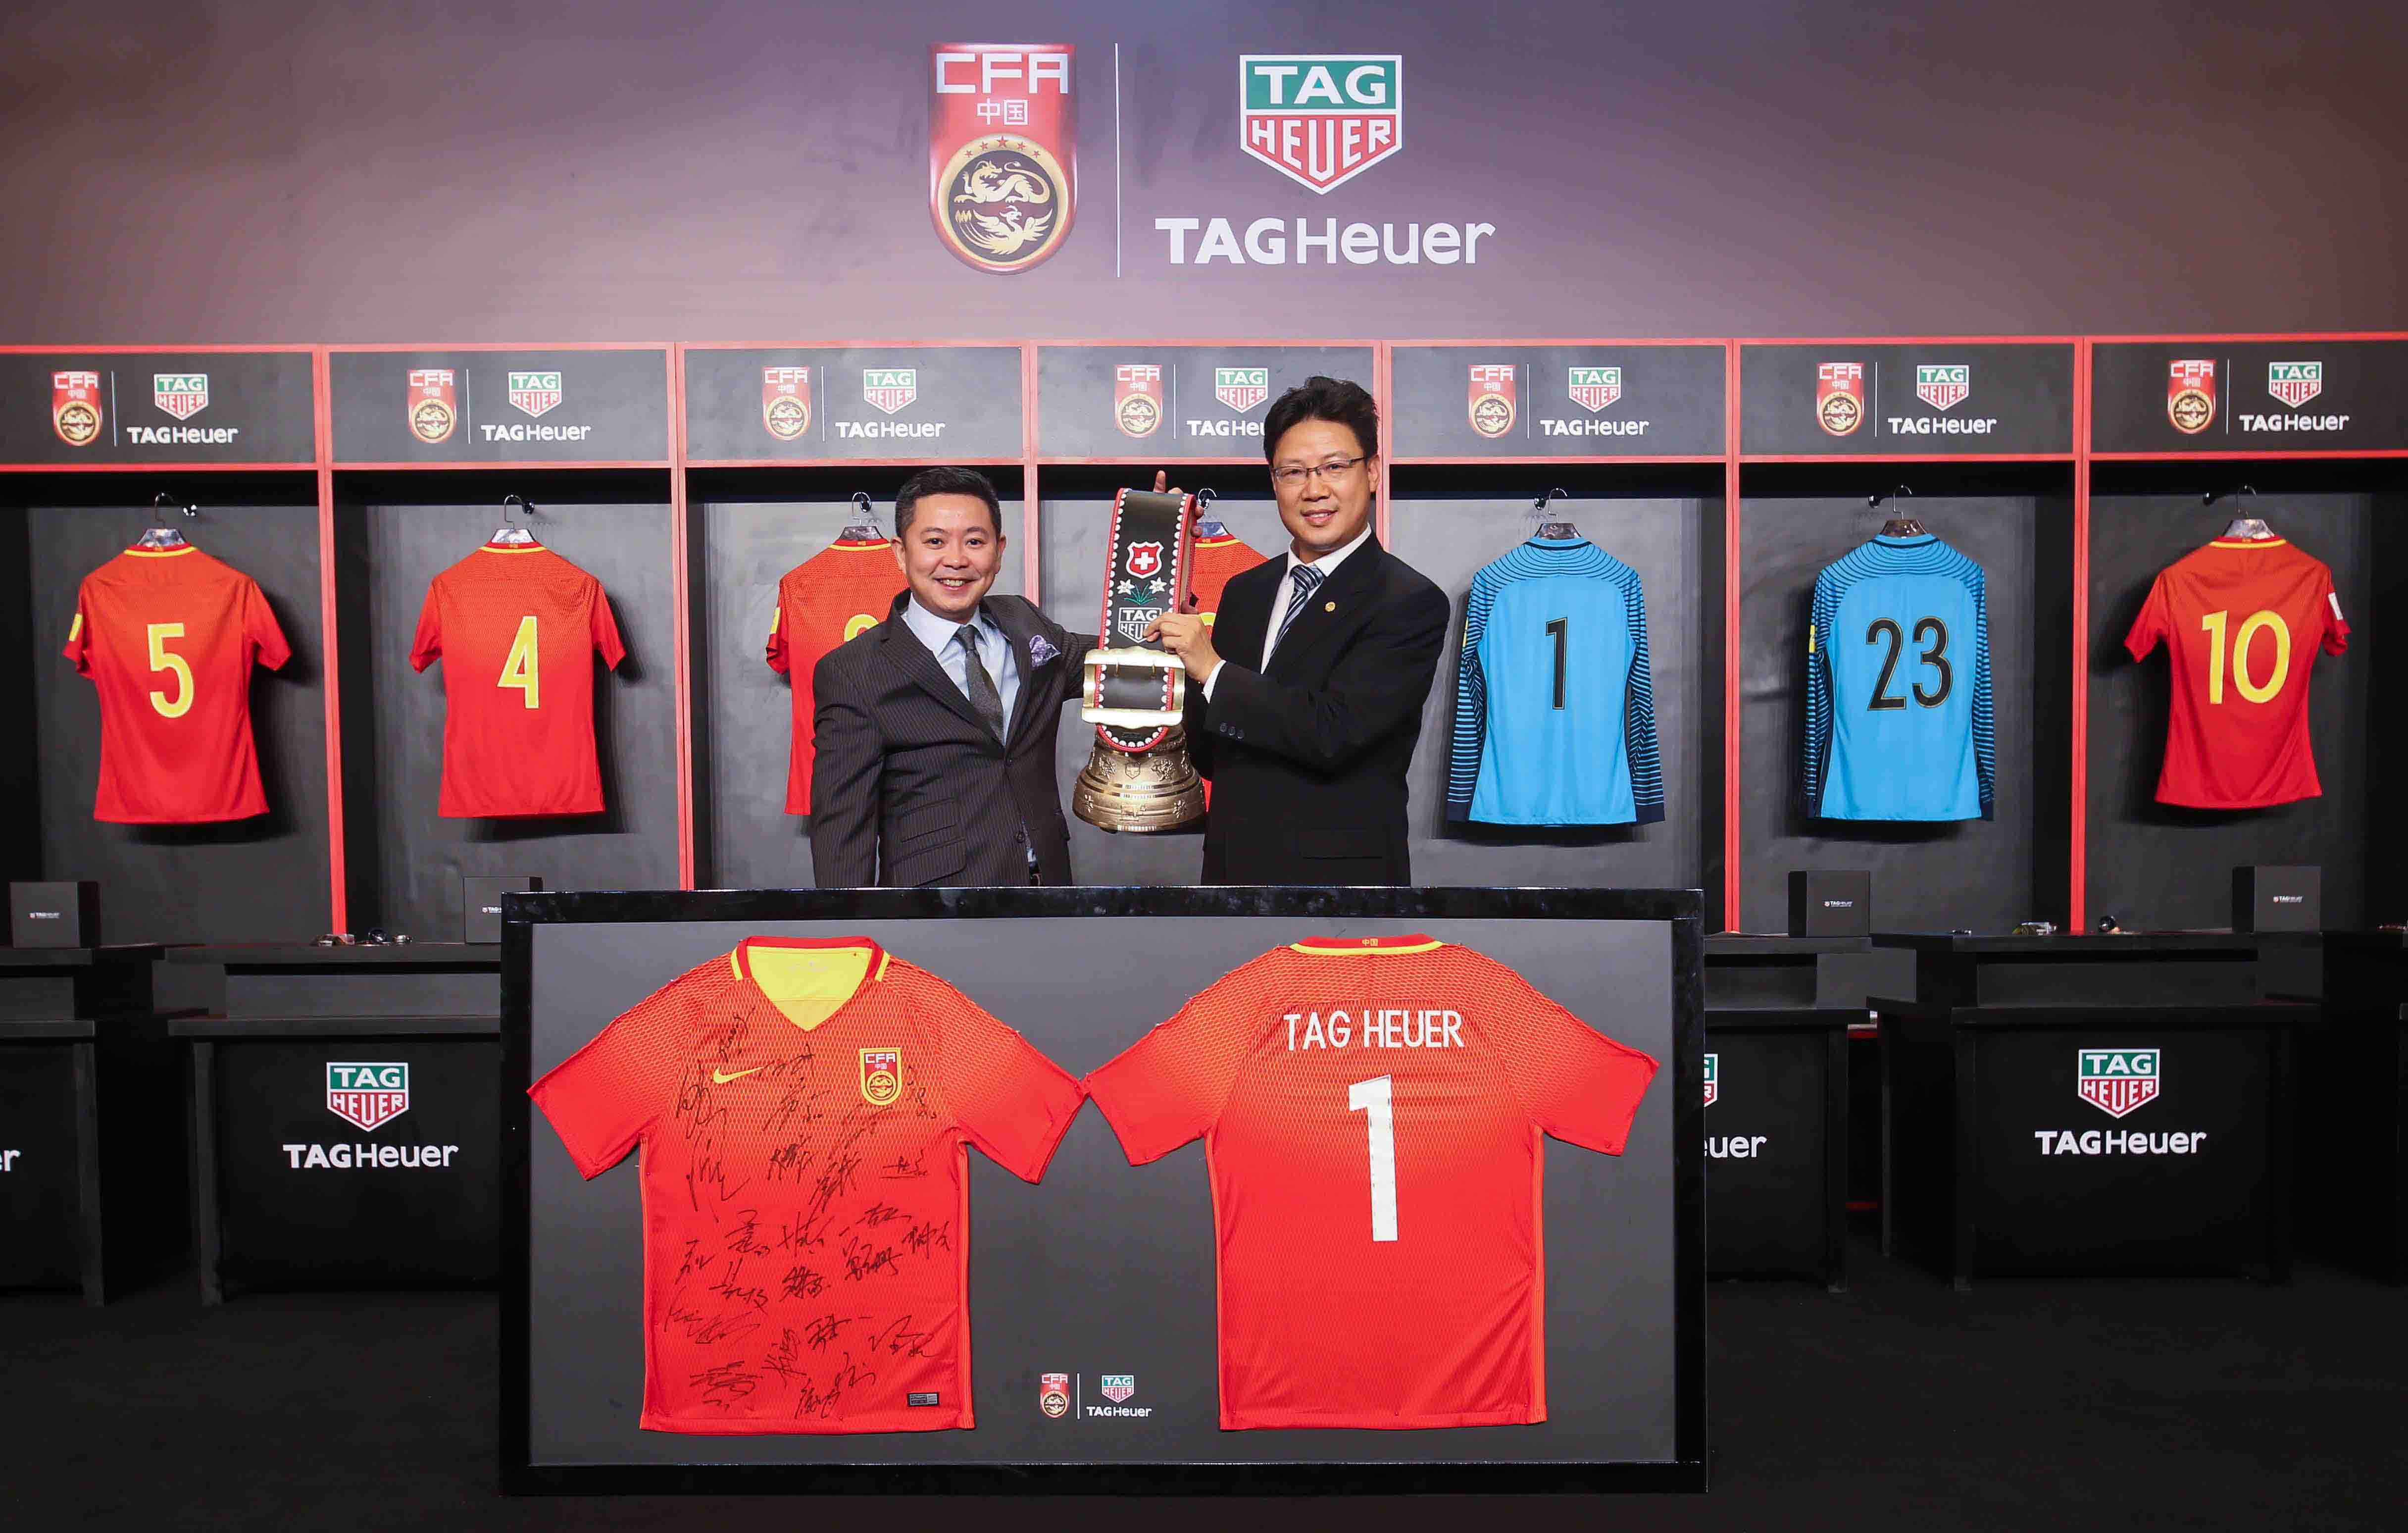 2 Mr Leo Poon TAG Heuer General Manager of Greater China and Mr Lin Xiaohua China Football Association Executive Committee Member exchanging souvenirs